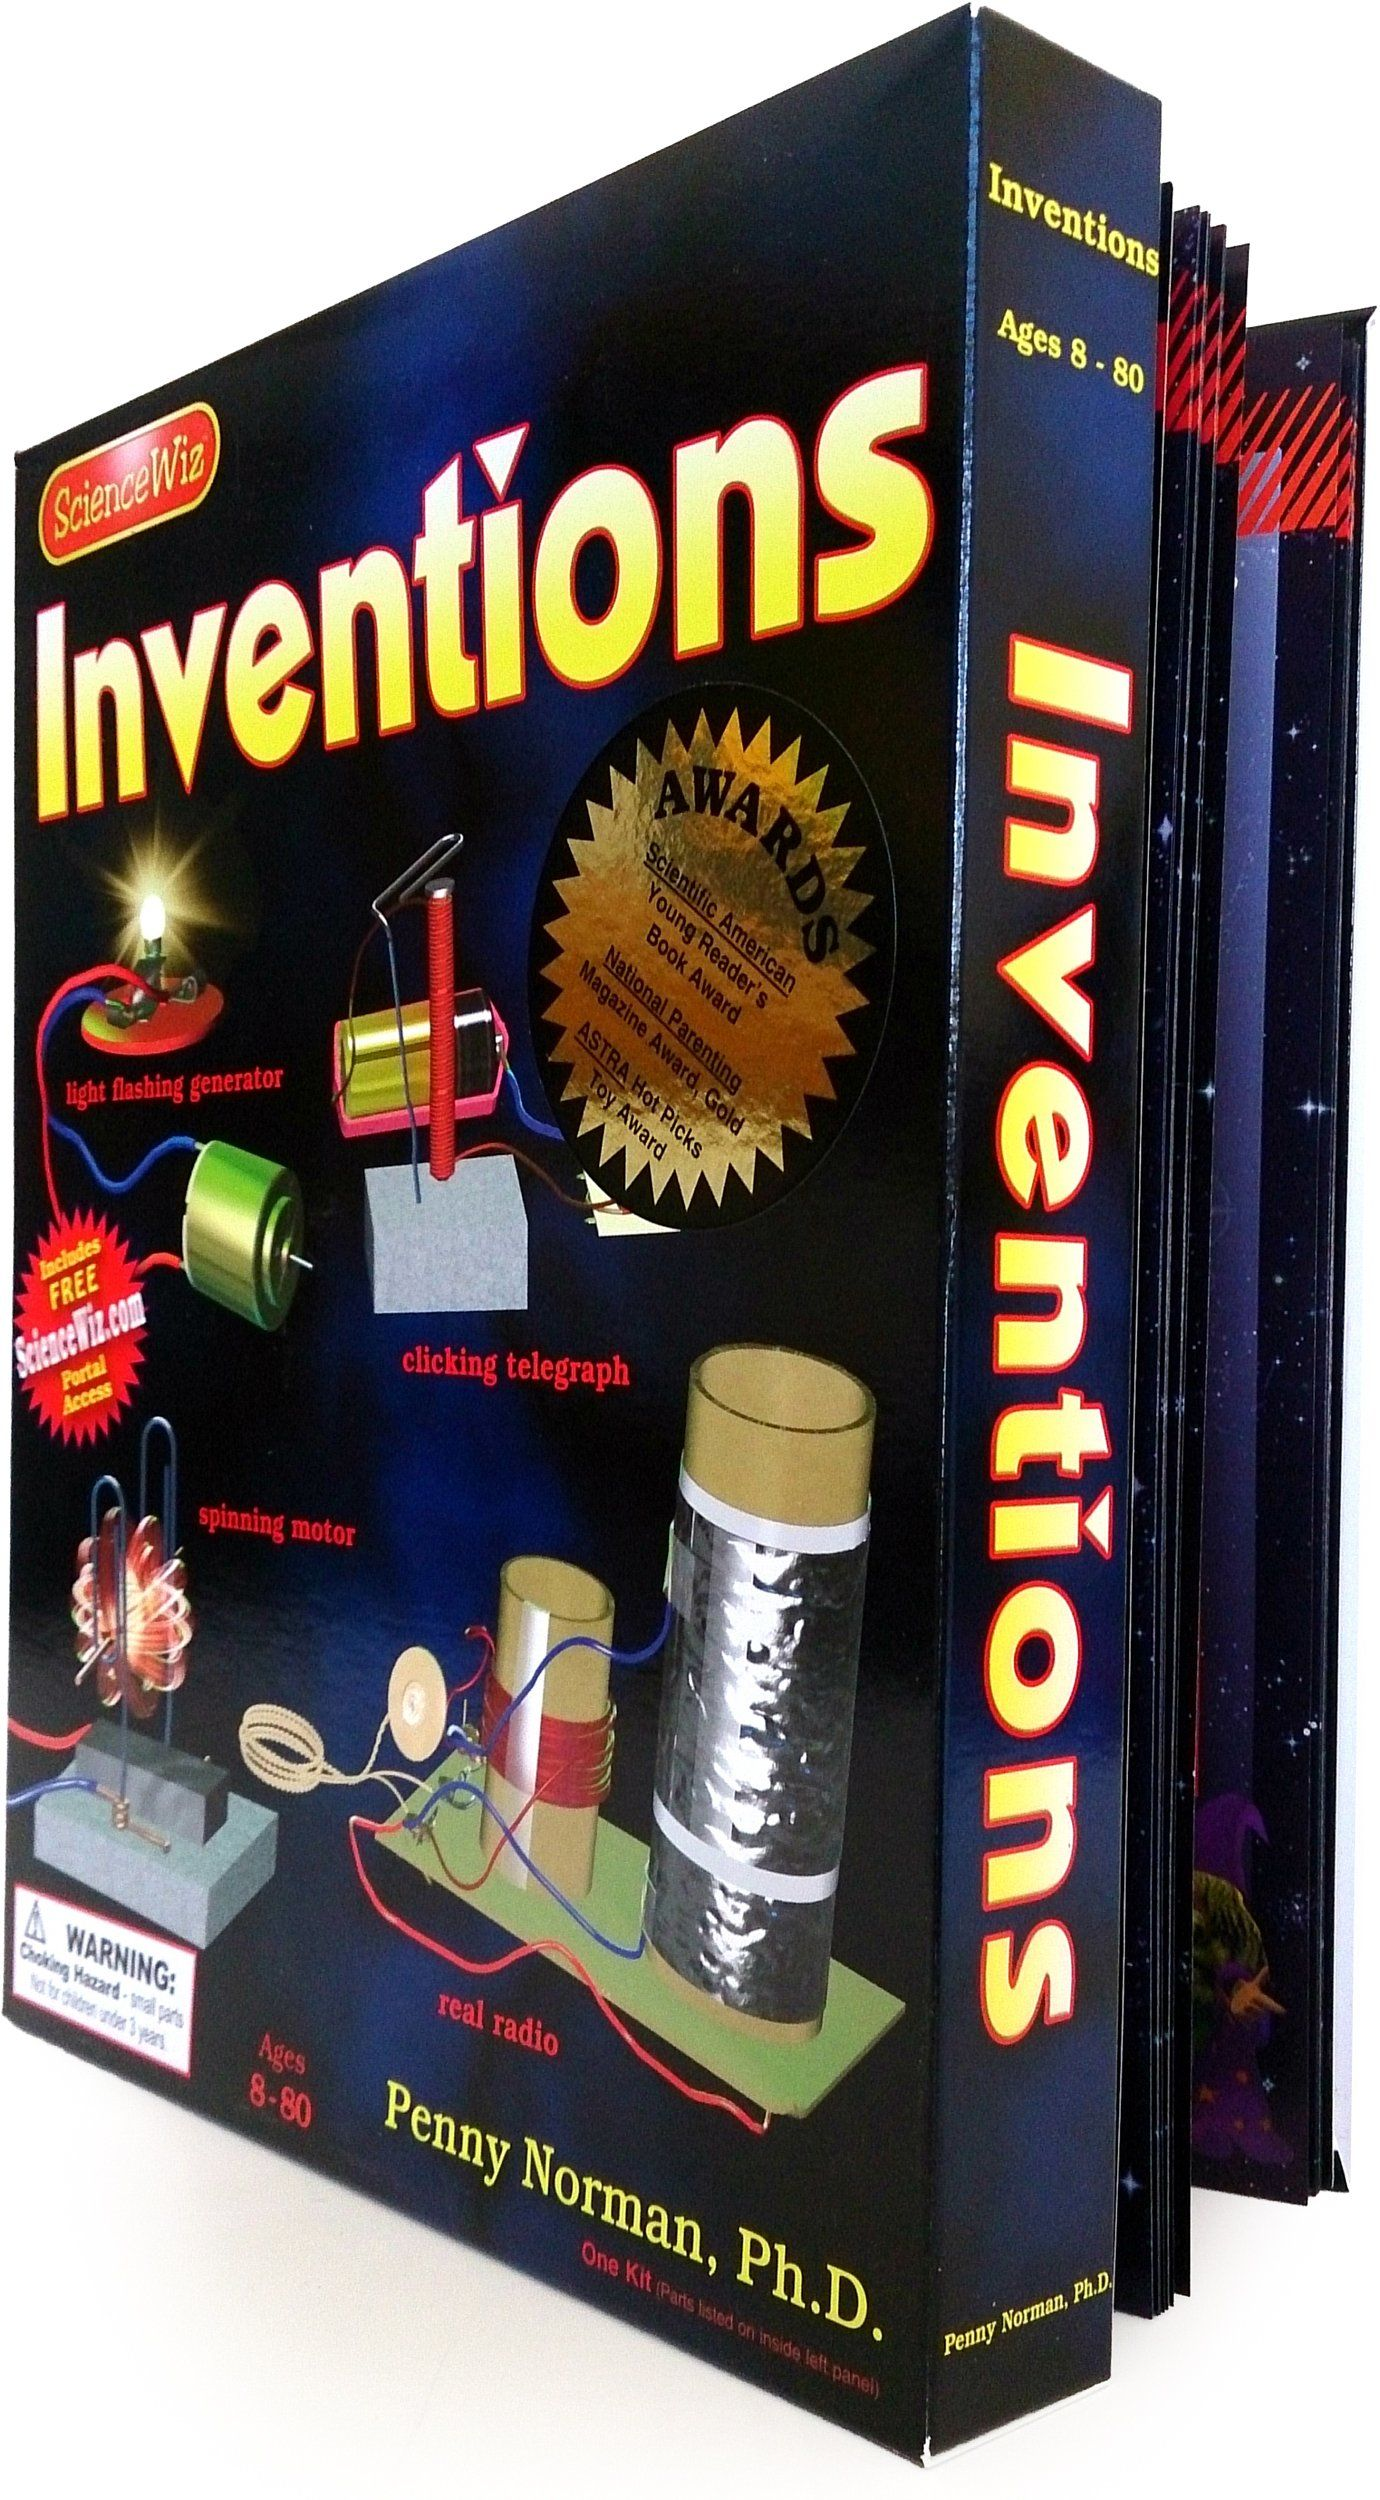 ScienceWiz / Inventions Kit- Build a motor, a telegraph, a